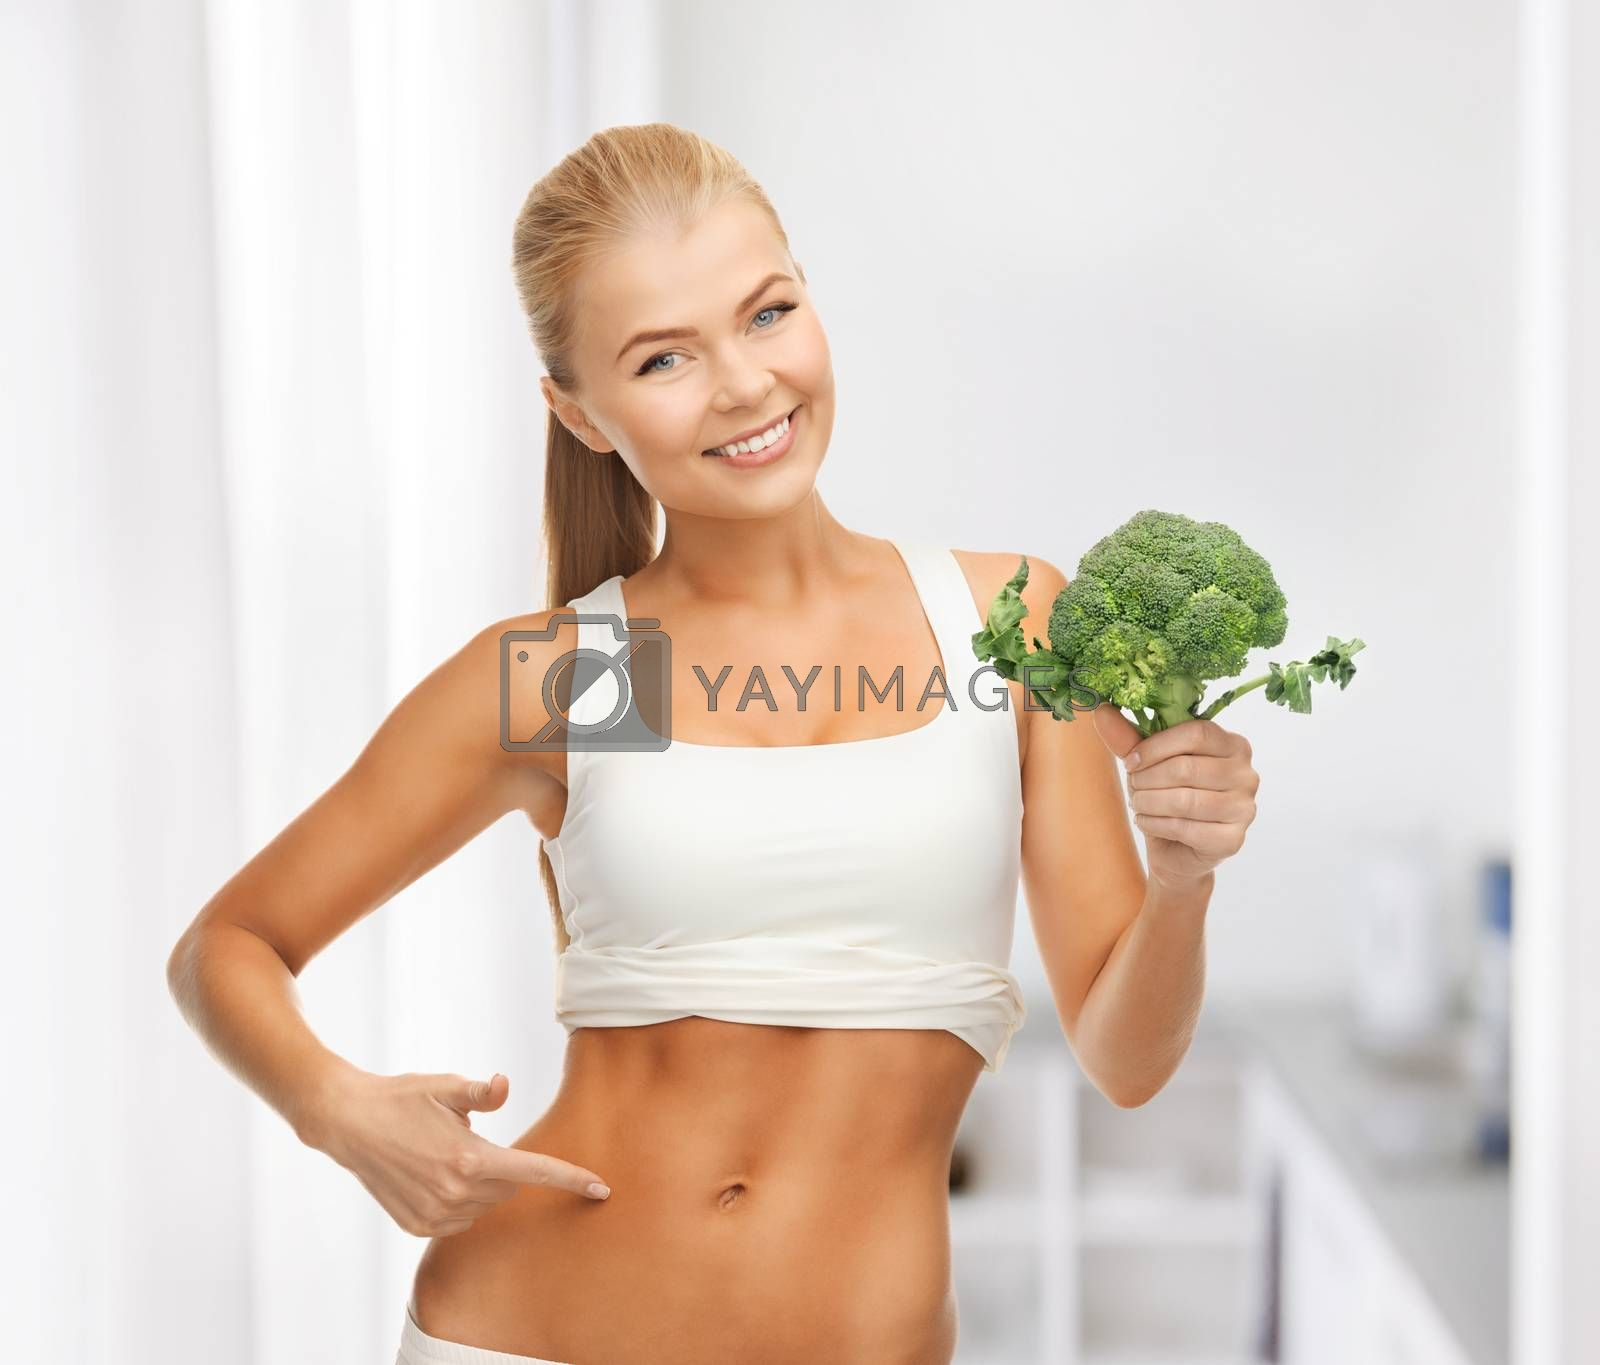 woman pointing at her abs and holding broccoli by dolgachov